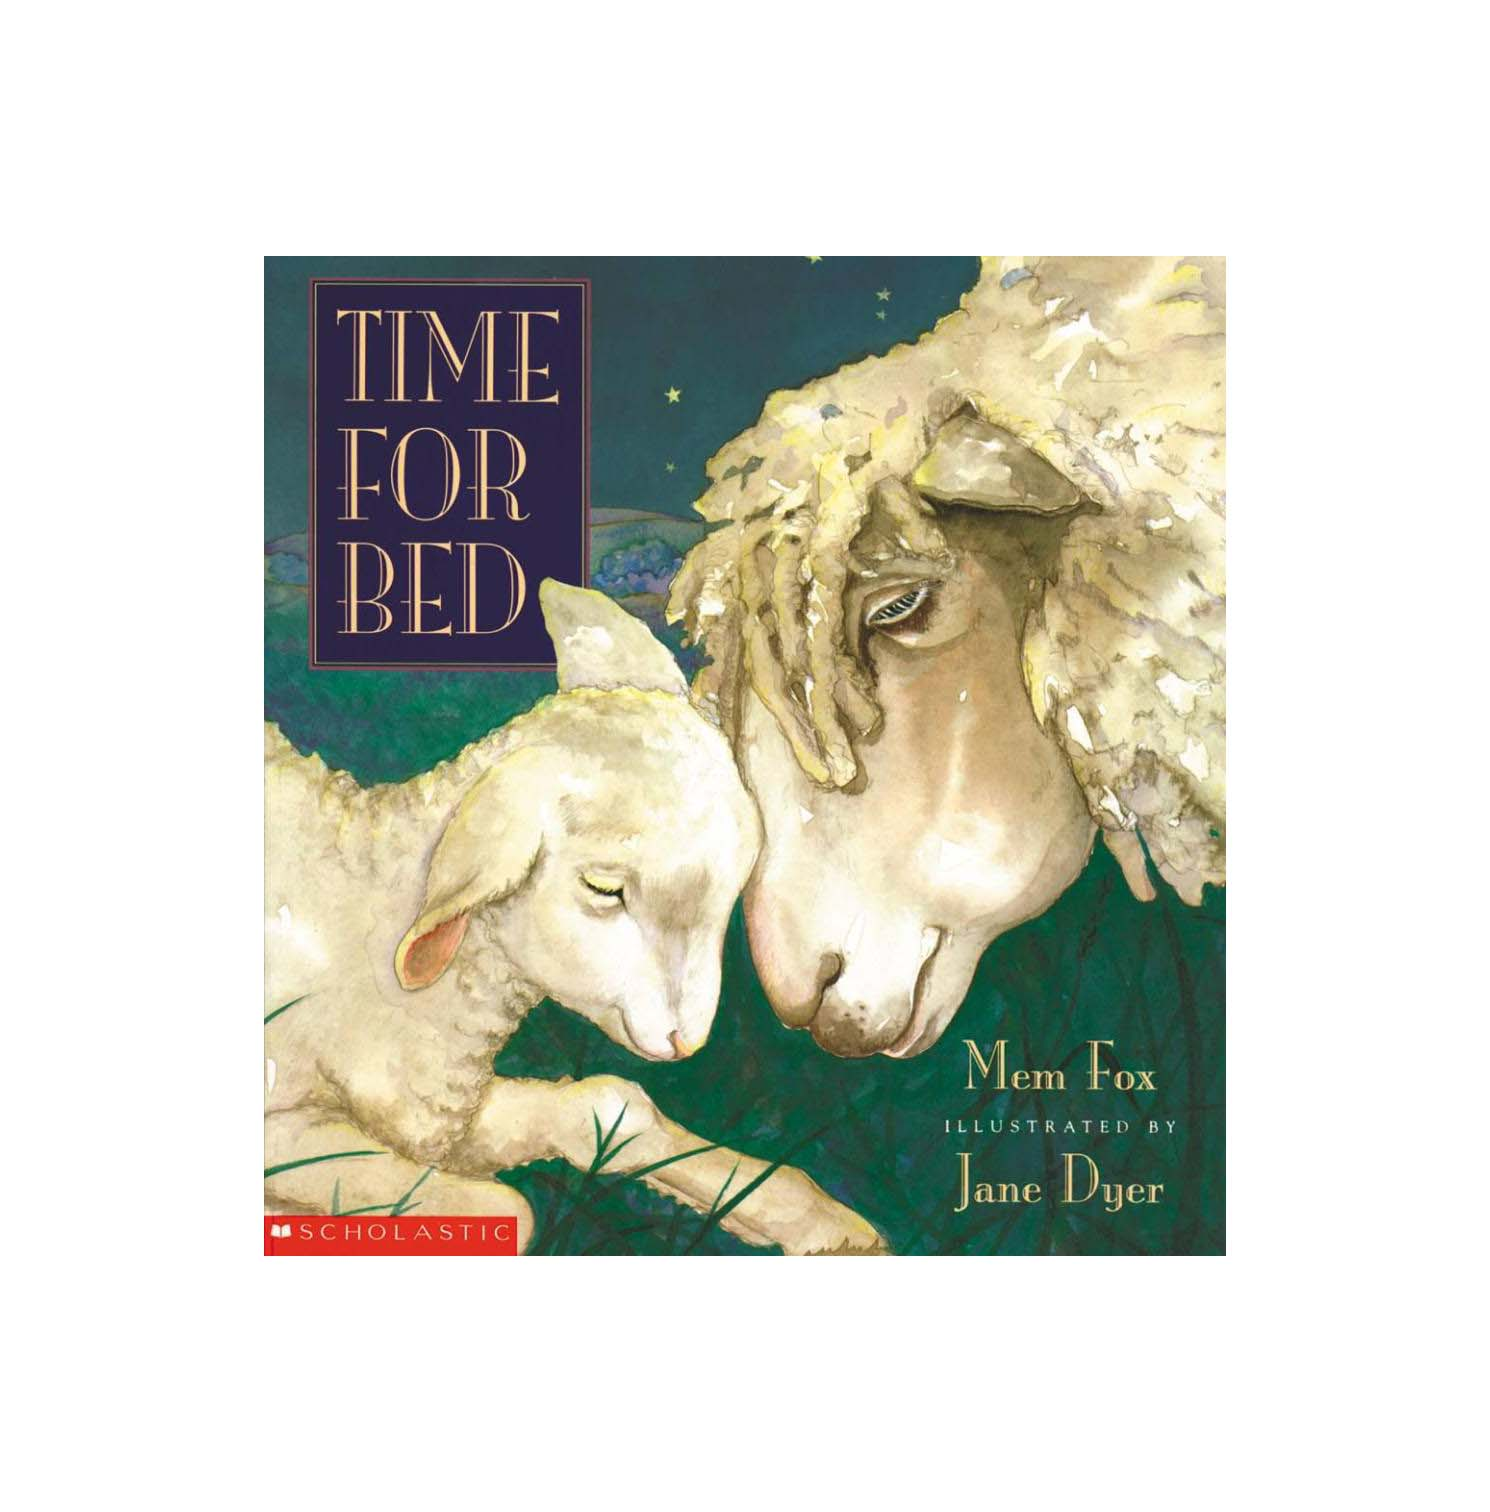 Time for Bed, by Mem Fox